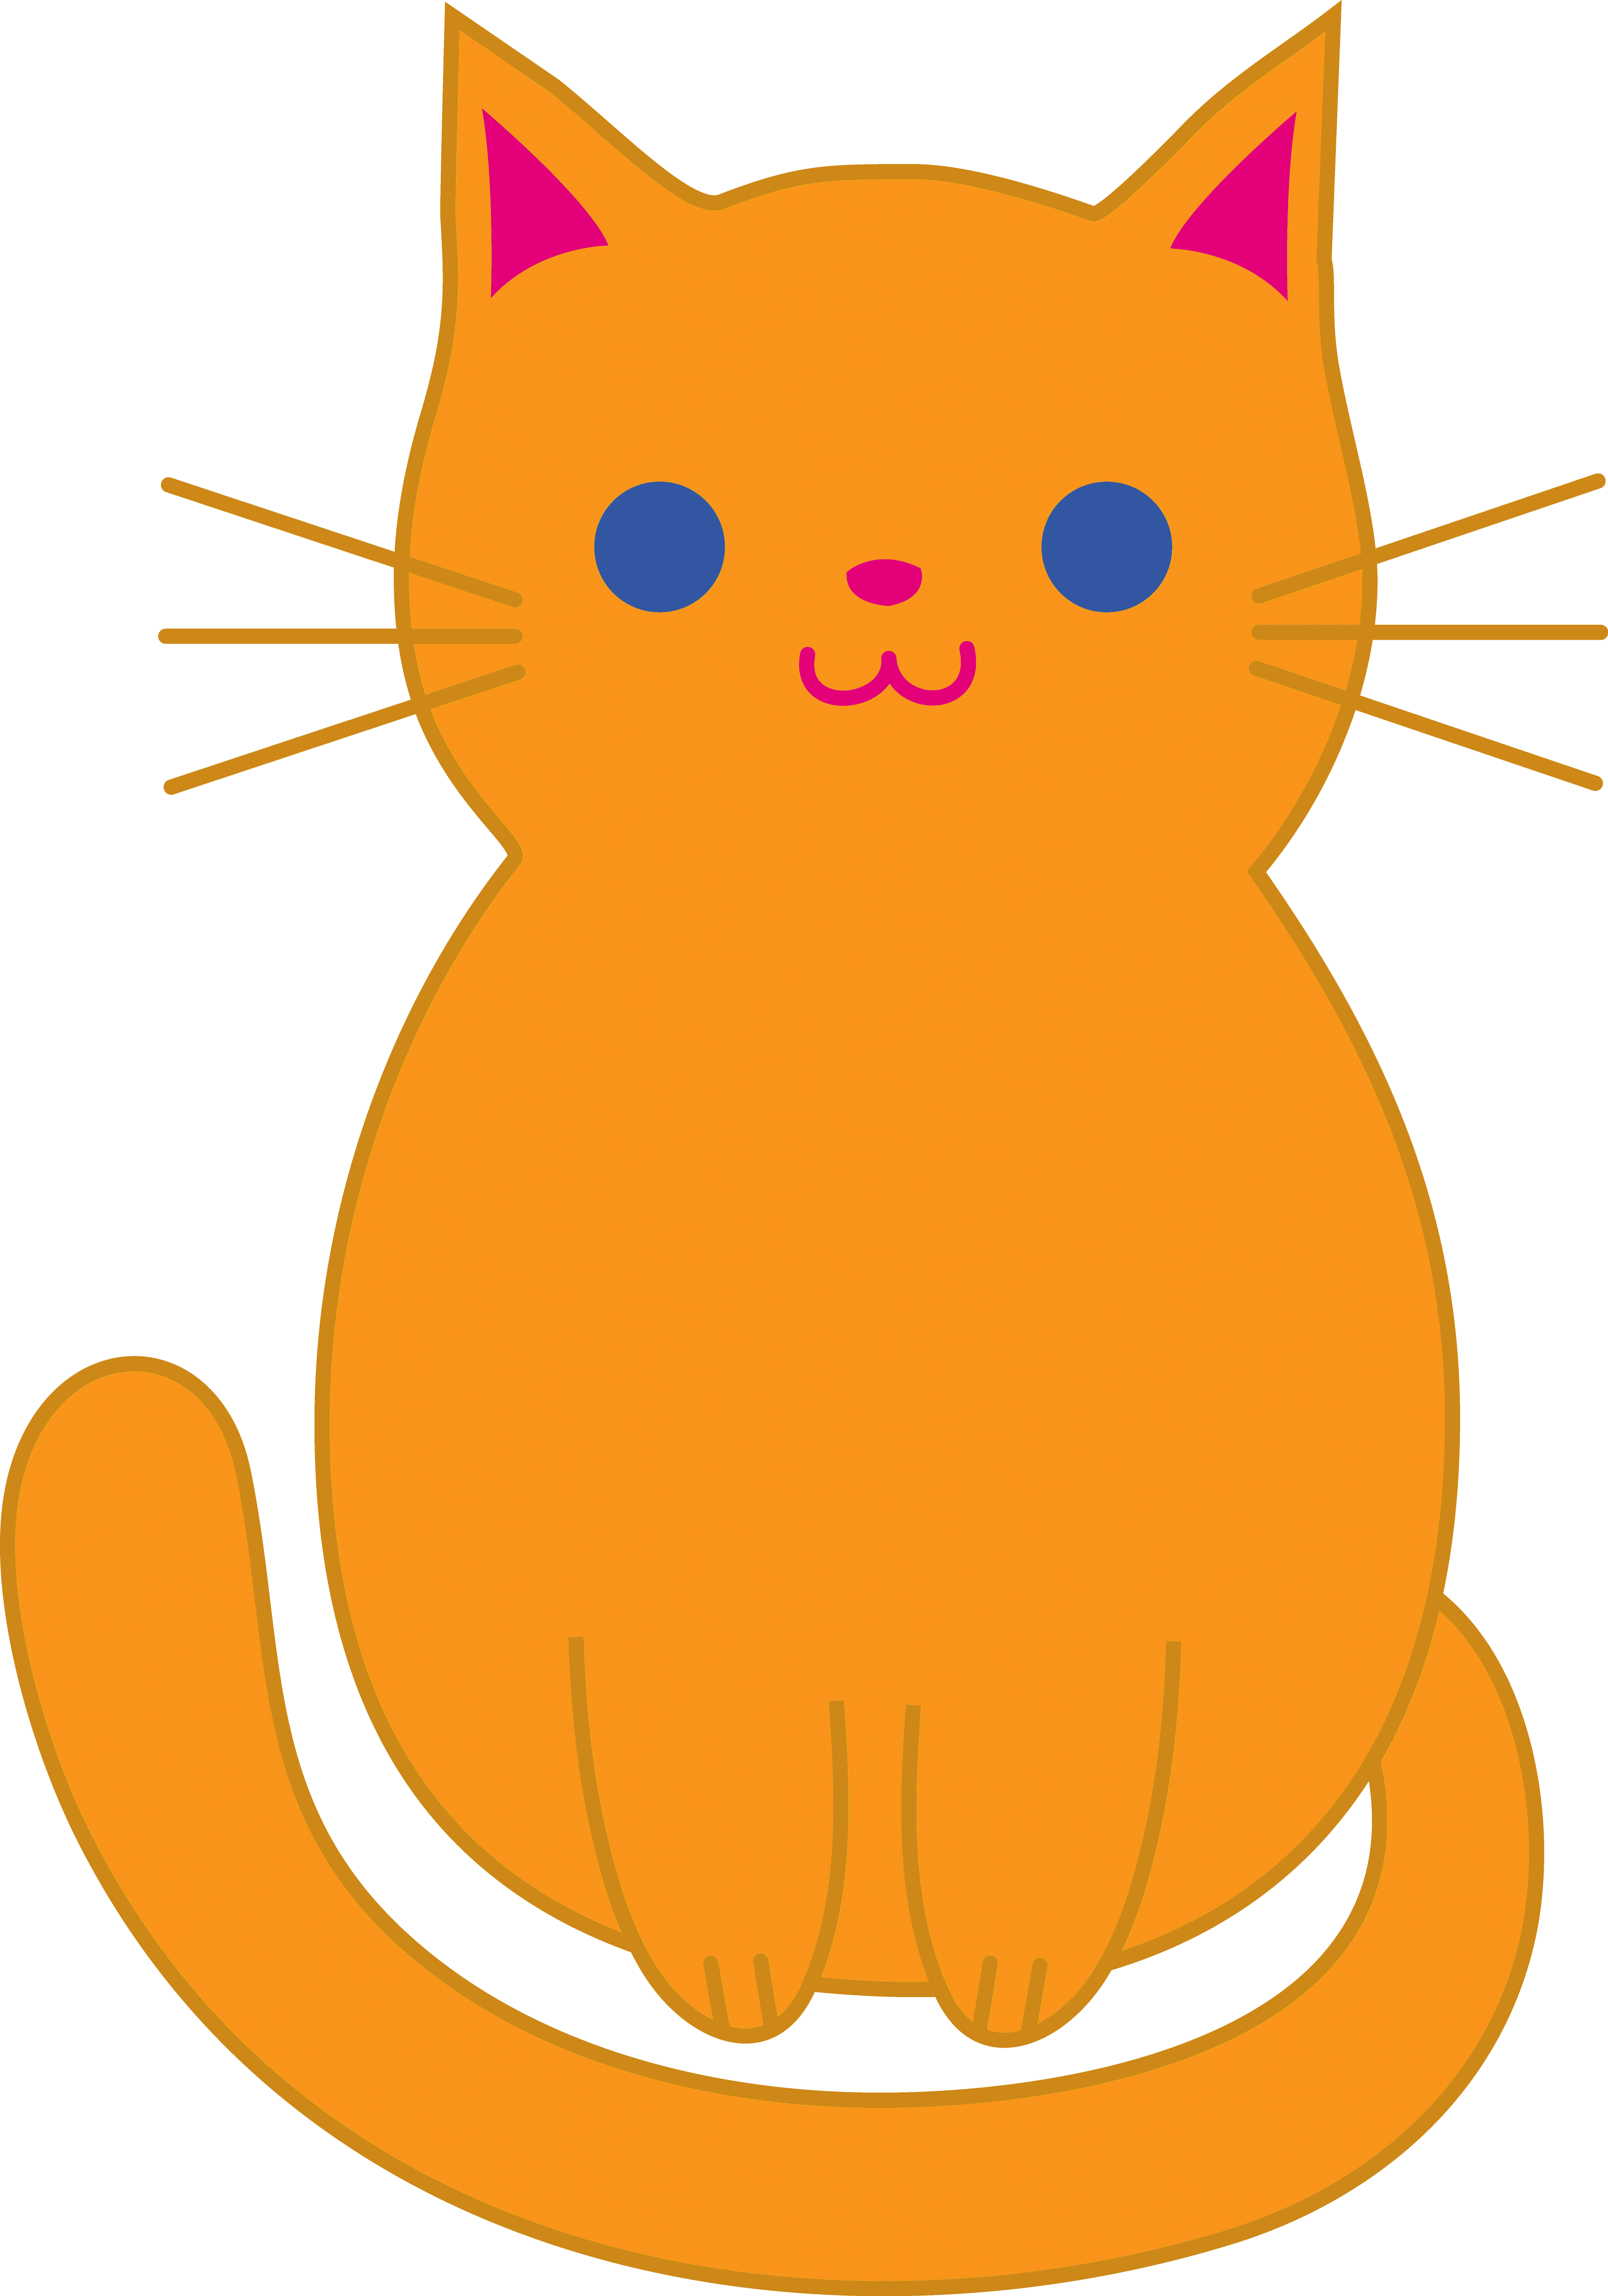 4th of july cat clipart graphic royalty free library Awww Clipart Image Group (71+) graphic royalty free library